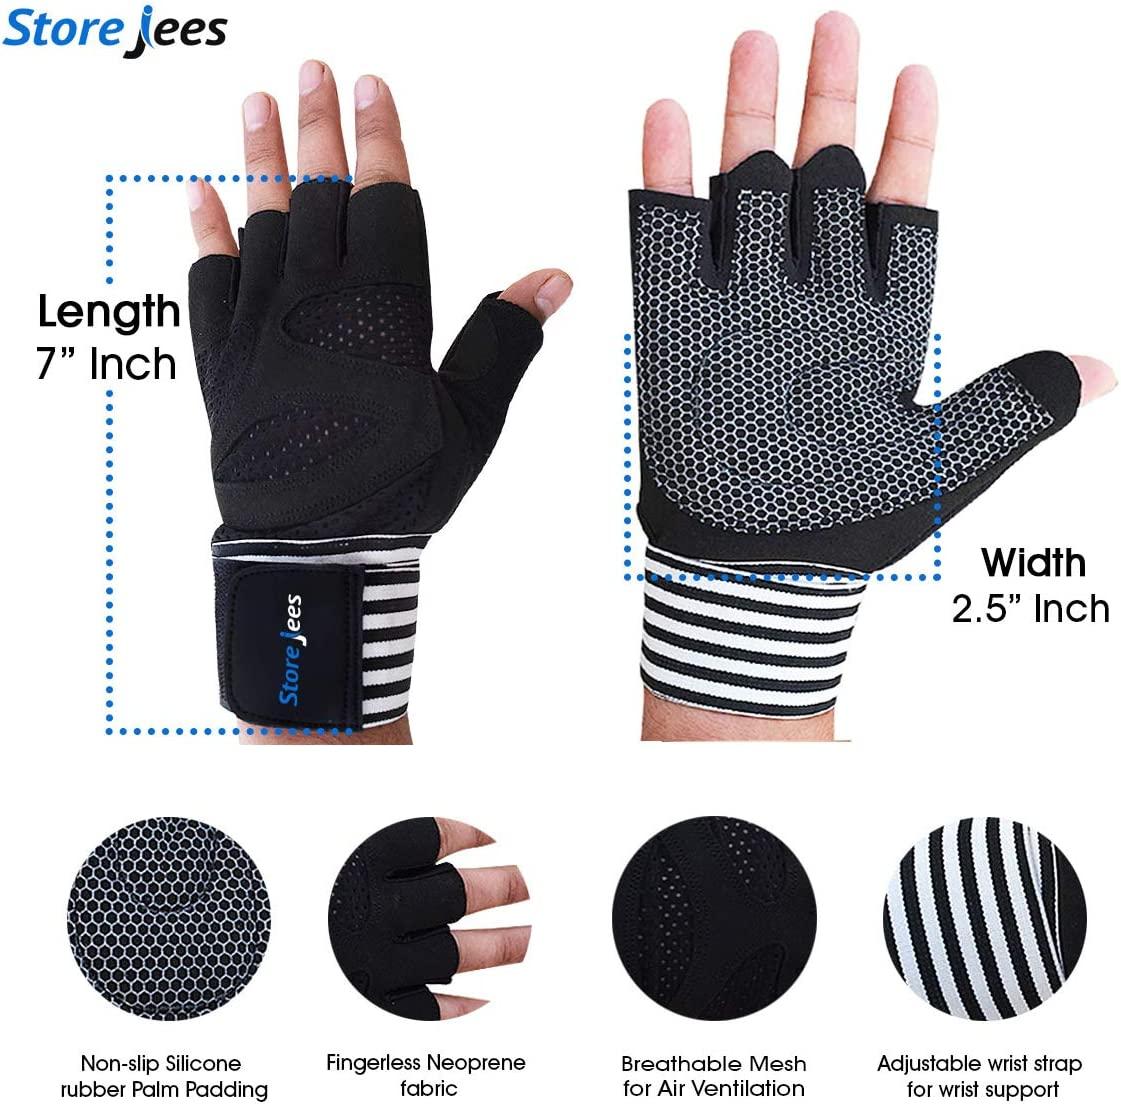 STOREJEES Weight Lifting and Work Out Gym Gloves with Wrist Support Fingerless Ventilated Pair for Men and Women Full Palm and Thumb Protection and Natural Grip for Crossfit Training Exercises